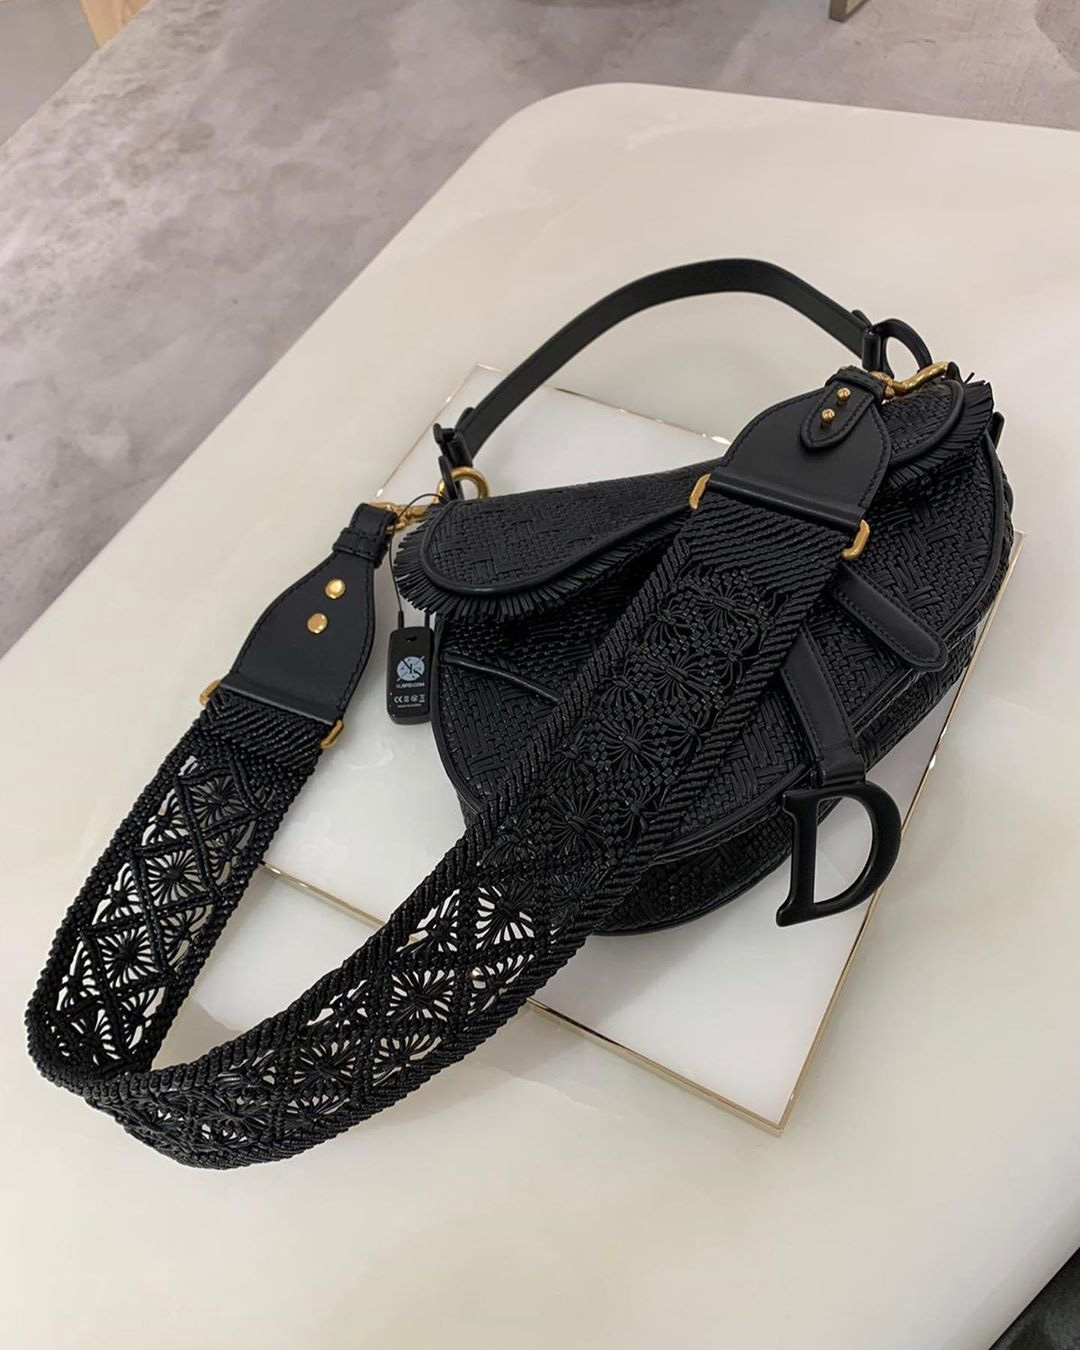 Dior Saddle Braided Leather Strips Bag more